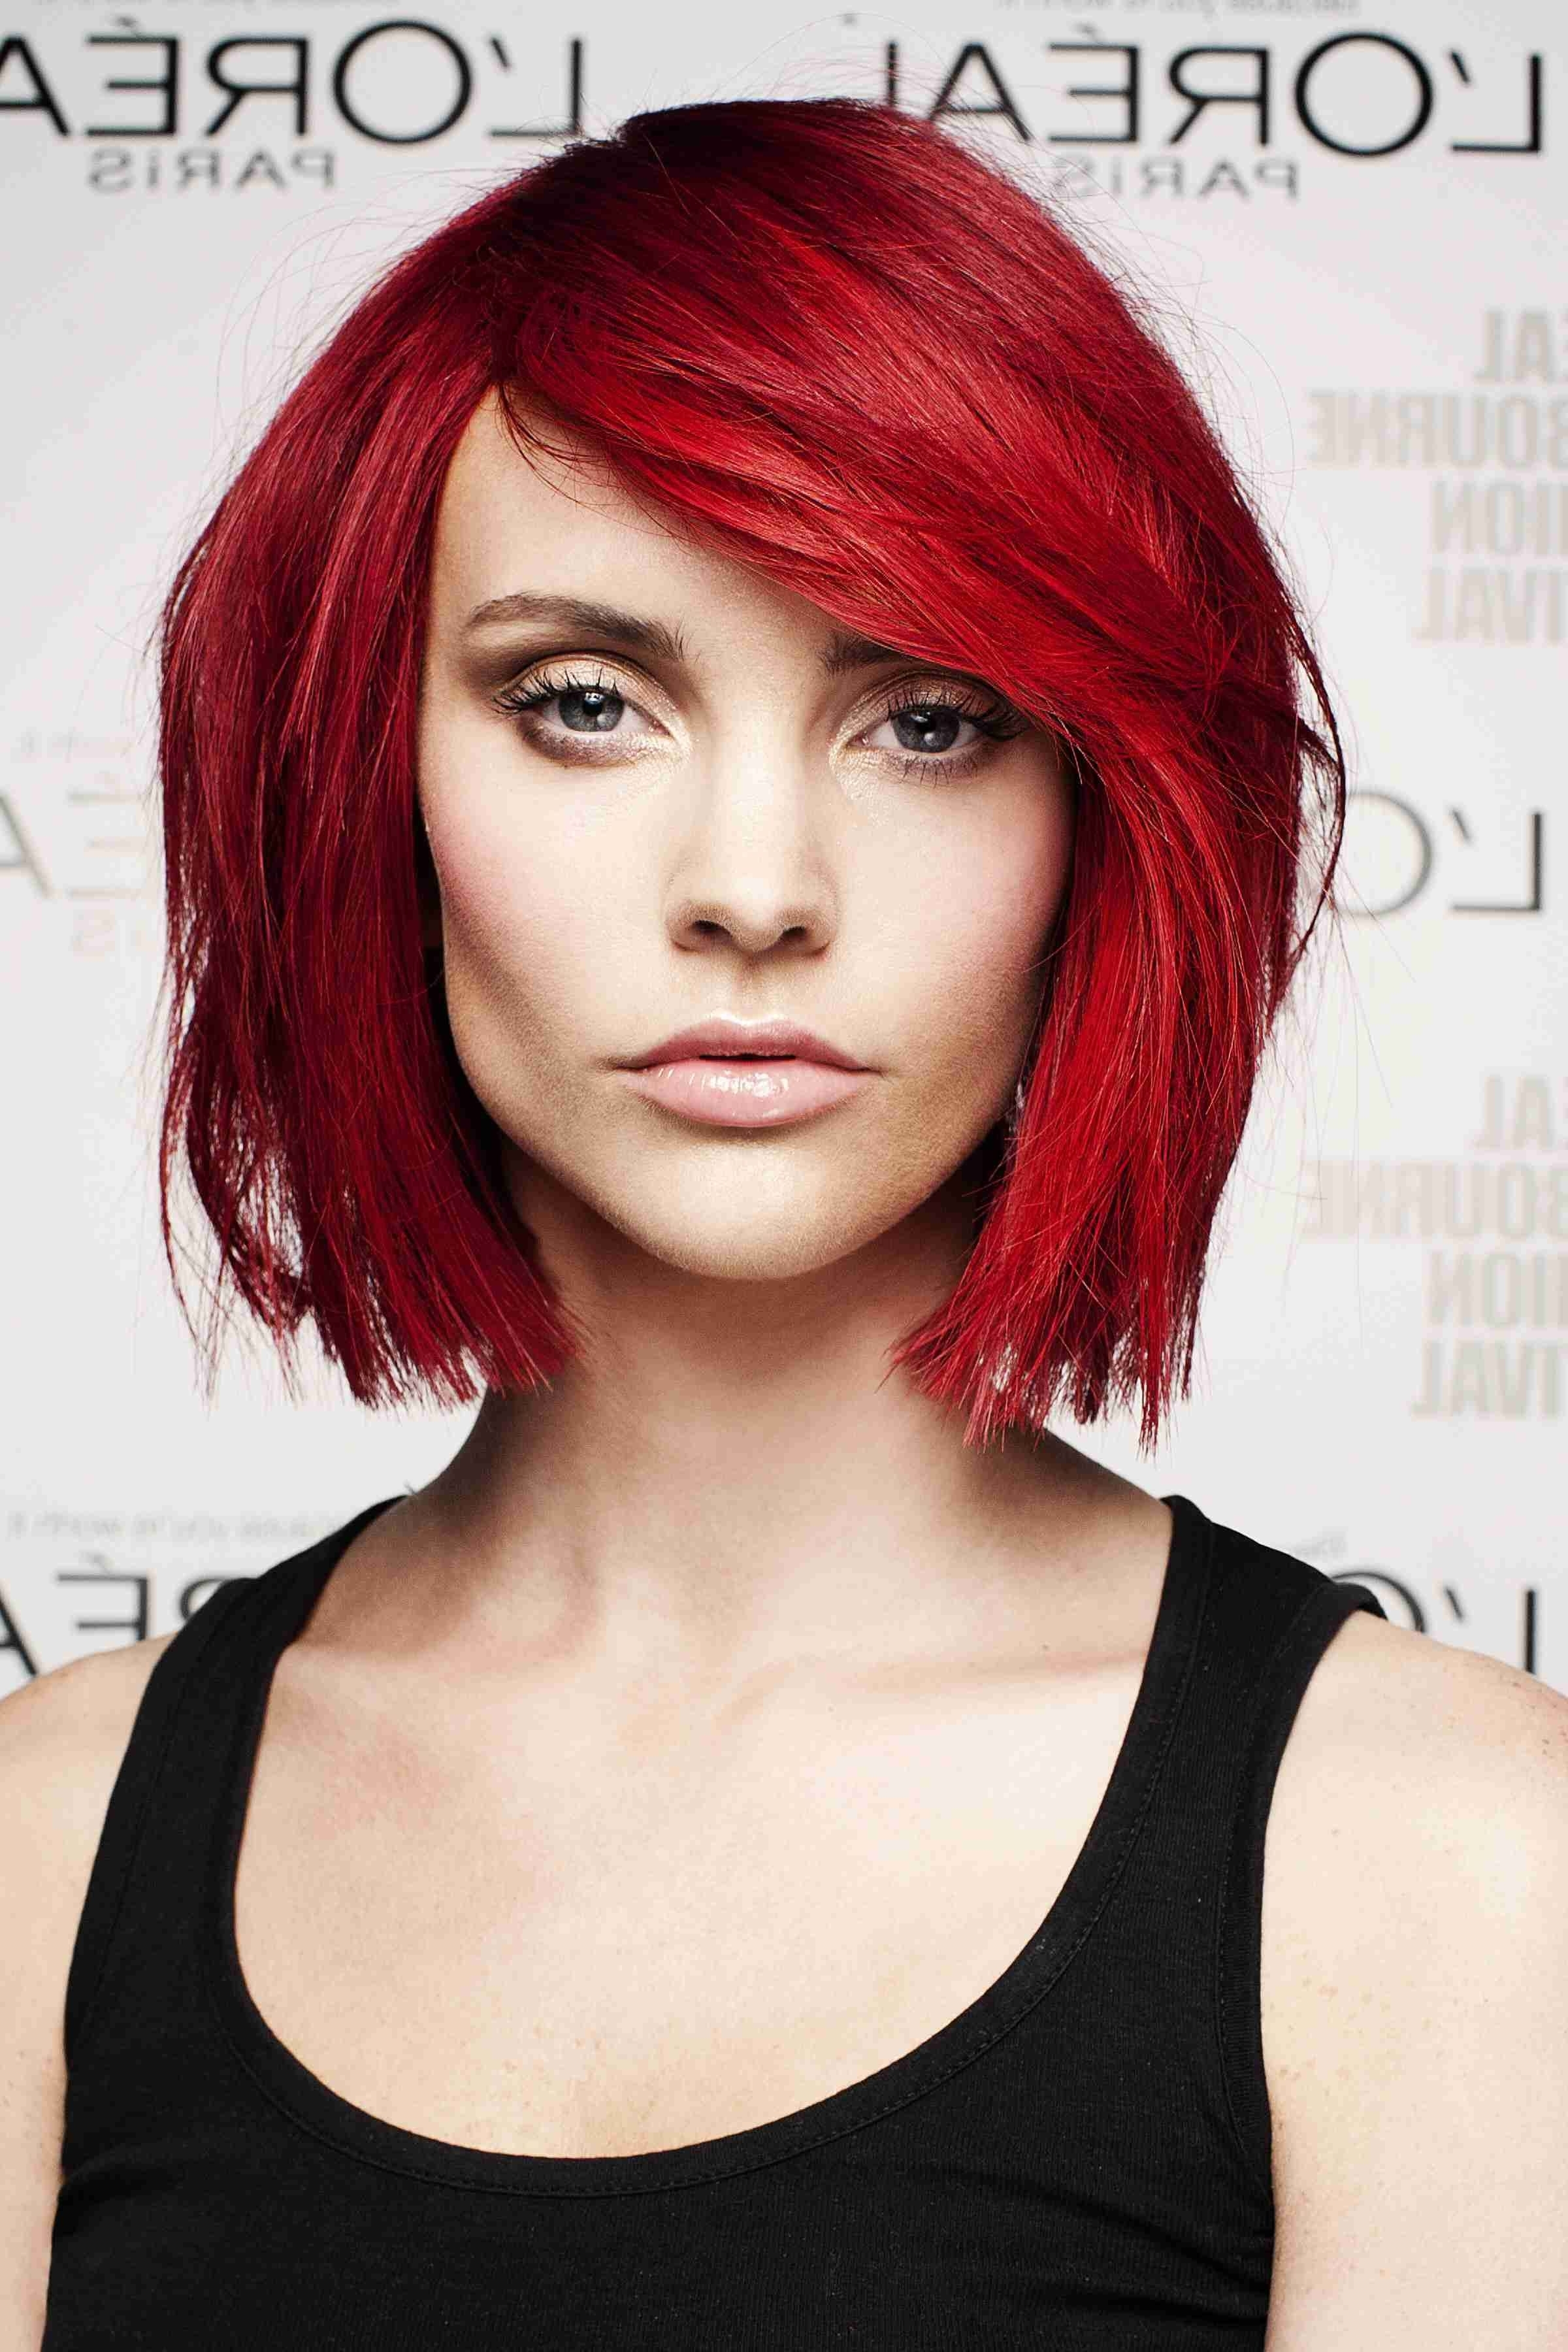 Fashionable Ravishing Red Pixie Hairstyles Pertaining To How To Navigate Your Makeup When You Have An Intense Hair Colour (View 10 of 20)